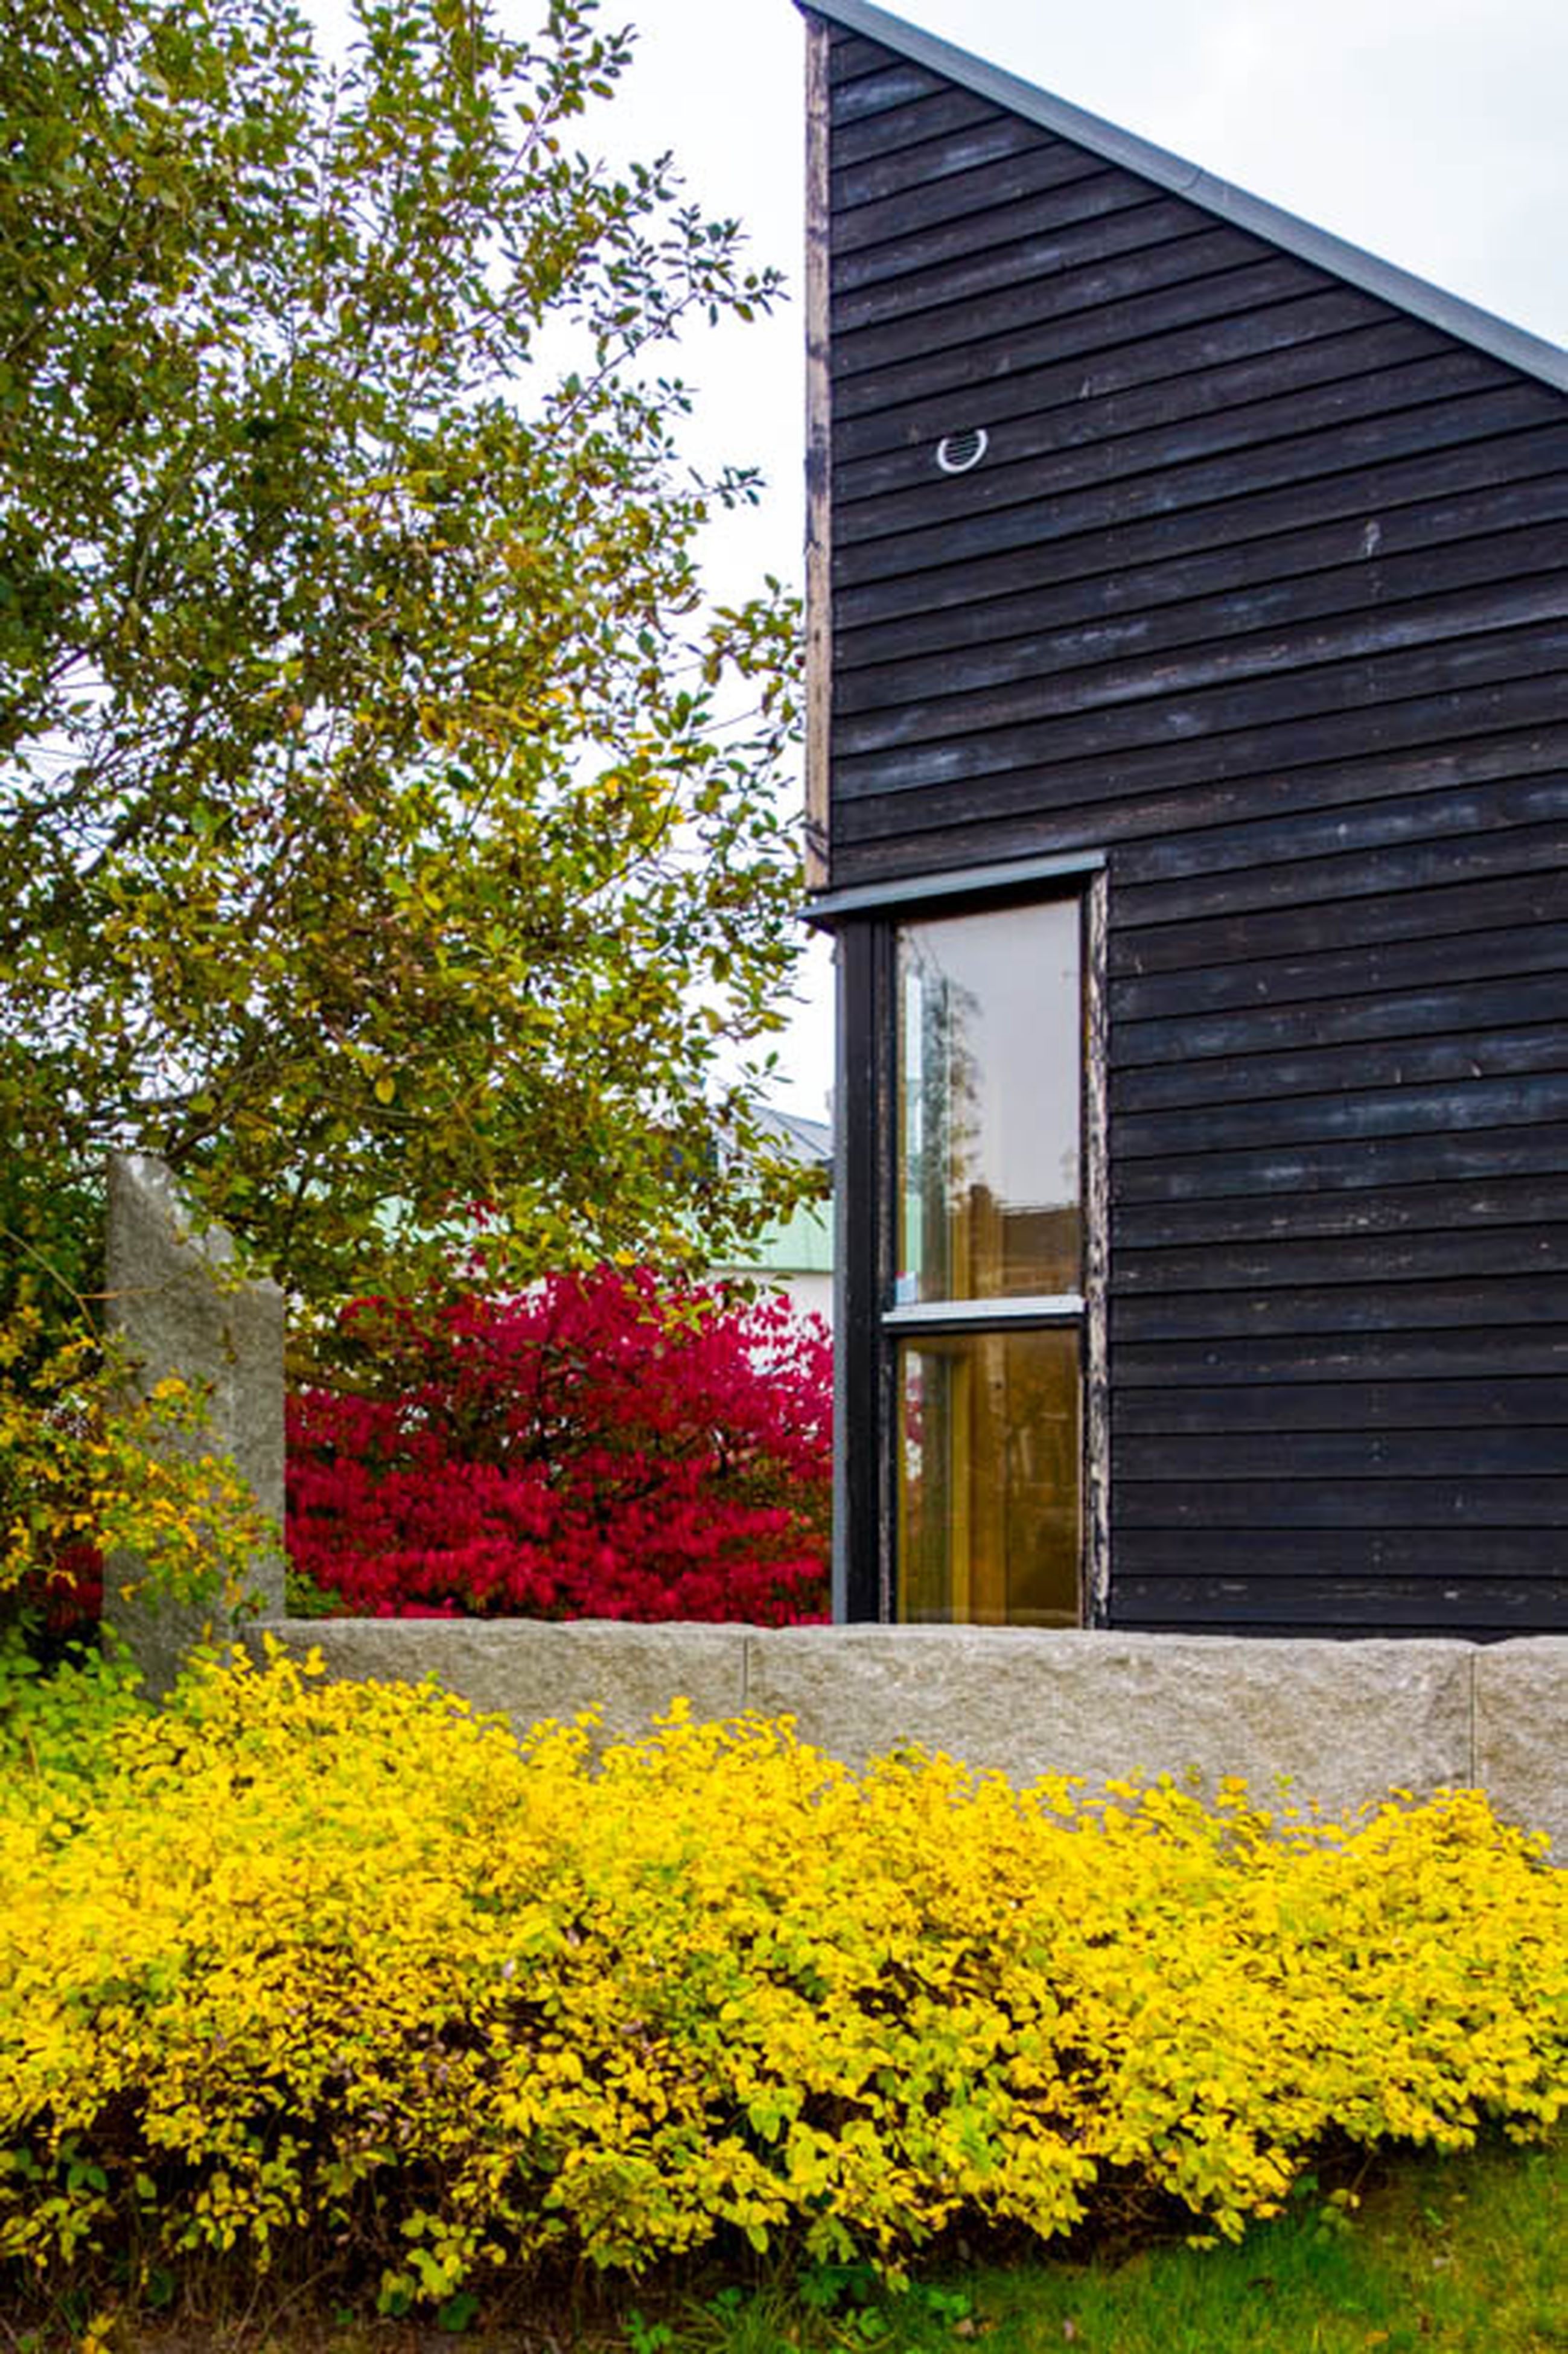 building exterior, architecture, built structure, window, yellow, tree, house, growth, flower, plant, residential structure, glass - material, day, nature, residential building, low angle view, outdoors, sky, season, no people